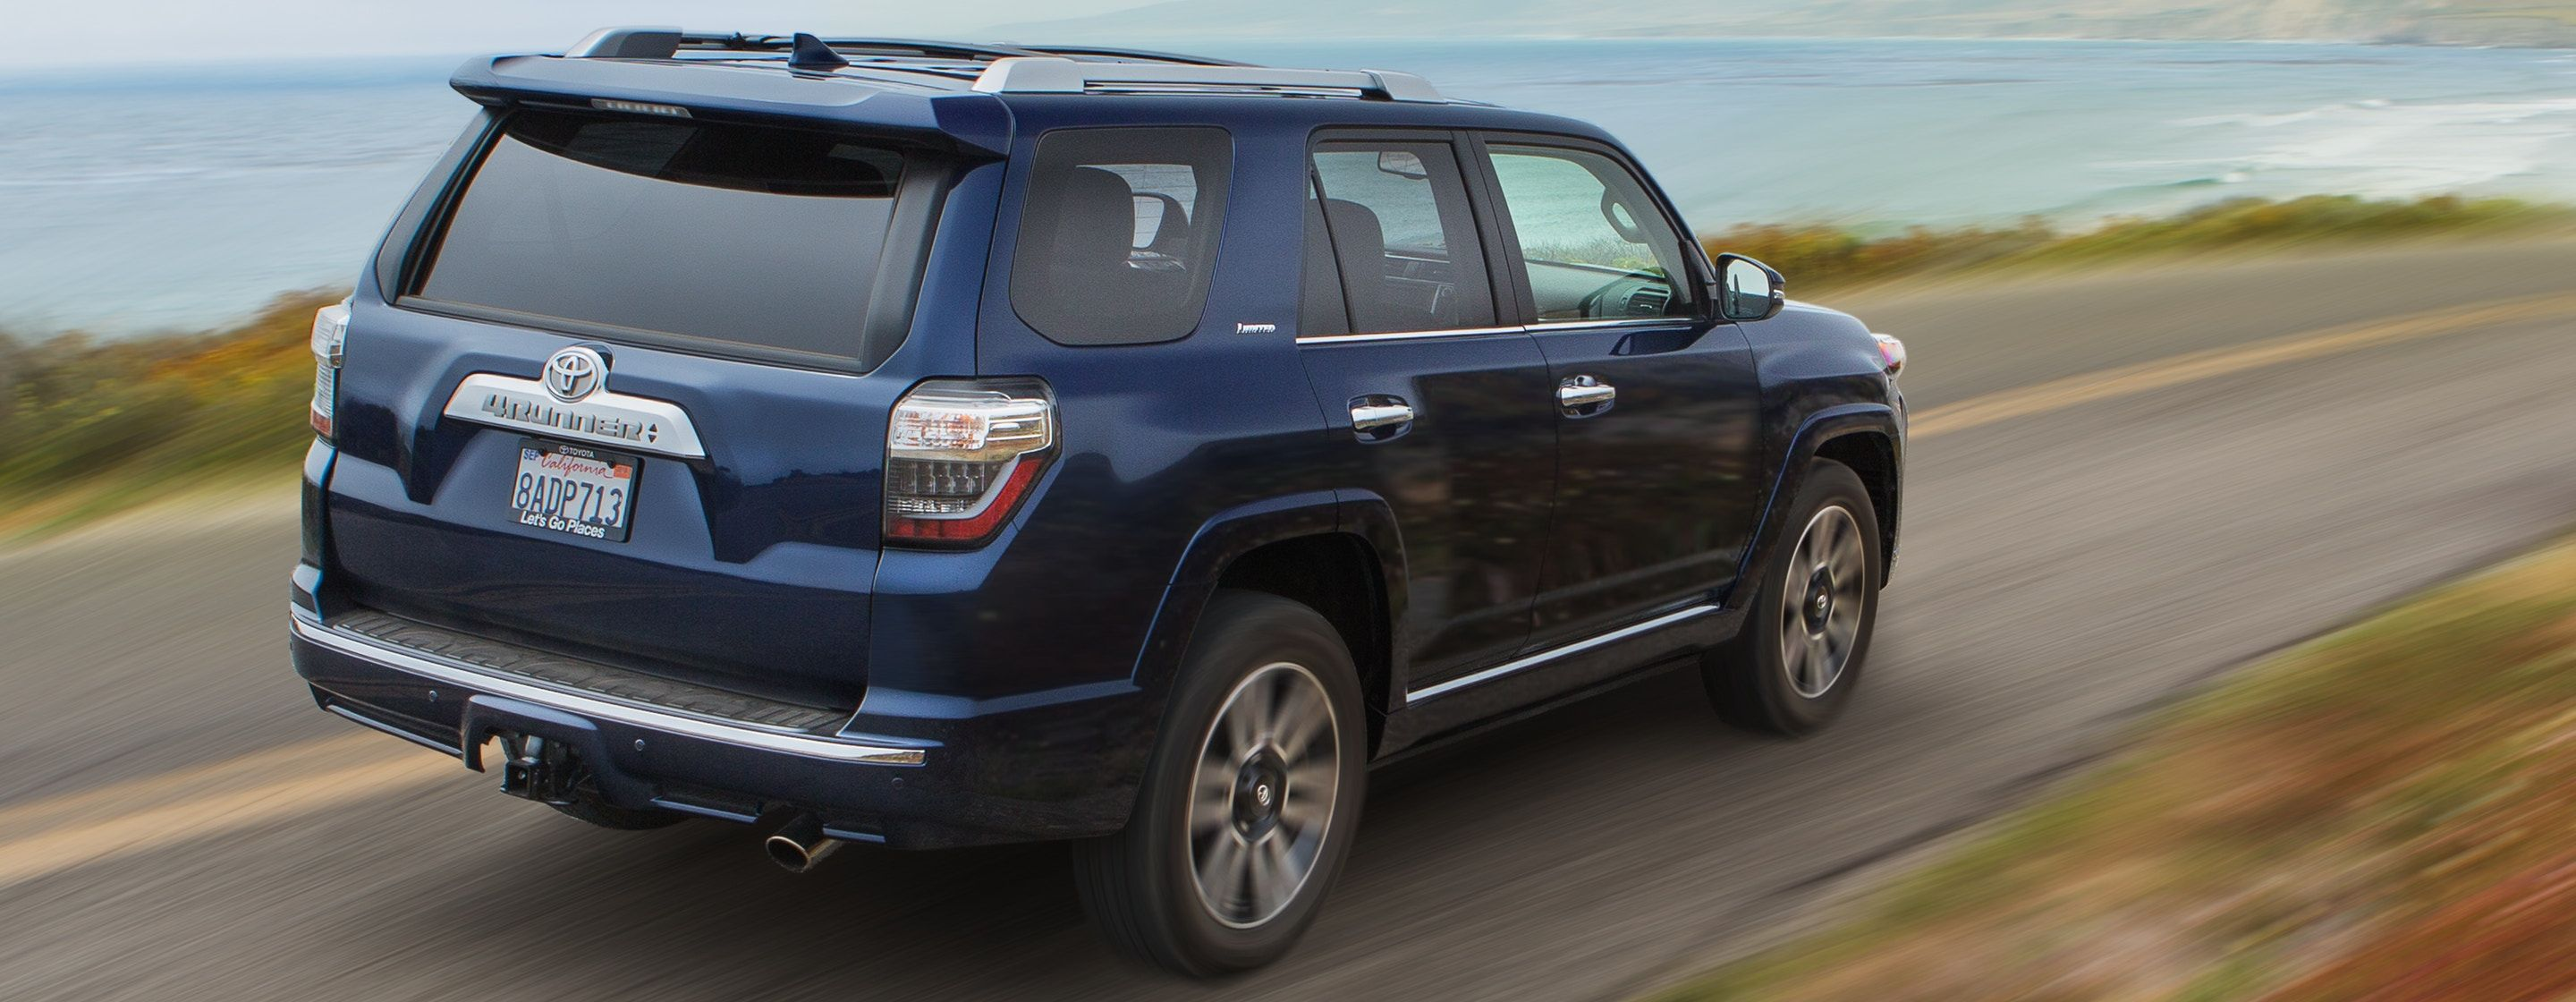 2019 Toyota 4Runner for Sale near White Plains, NY